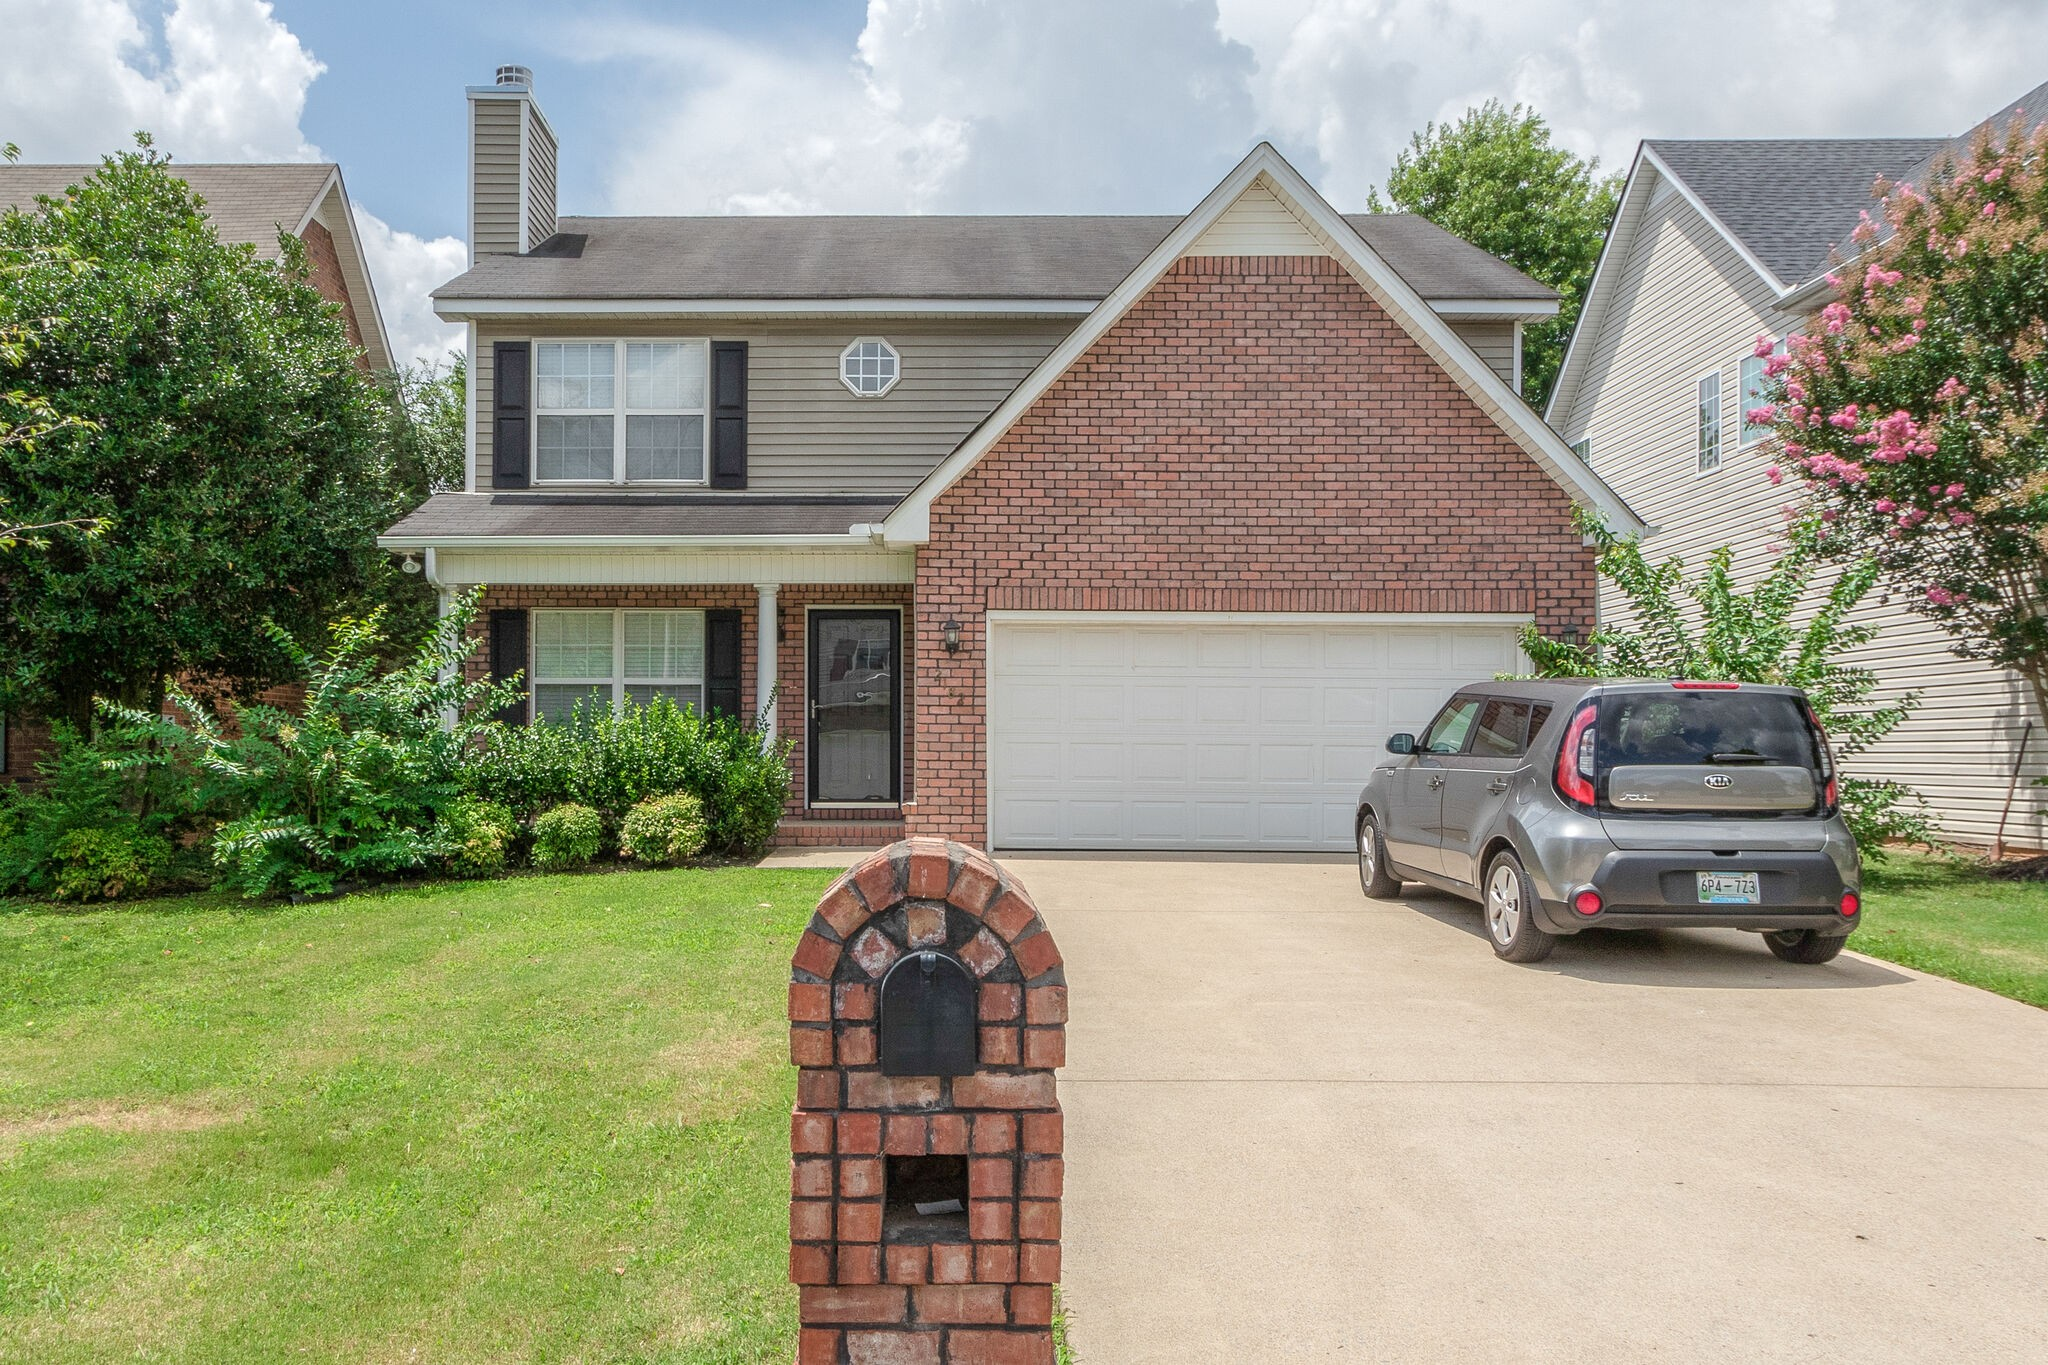 New carpet, paint and some fixtures. Brushed nickle hardware, SS appliances in the kitchen. Downstairs HVAC  is brand new. Nice size bedrooms. Community pool. Close to MTSU, shopping and restaurants.